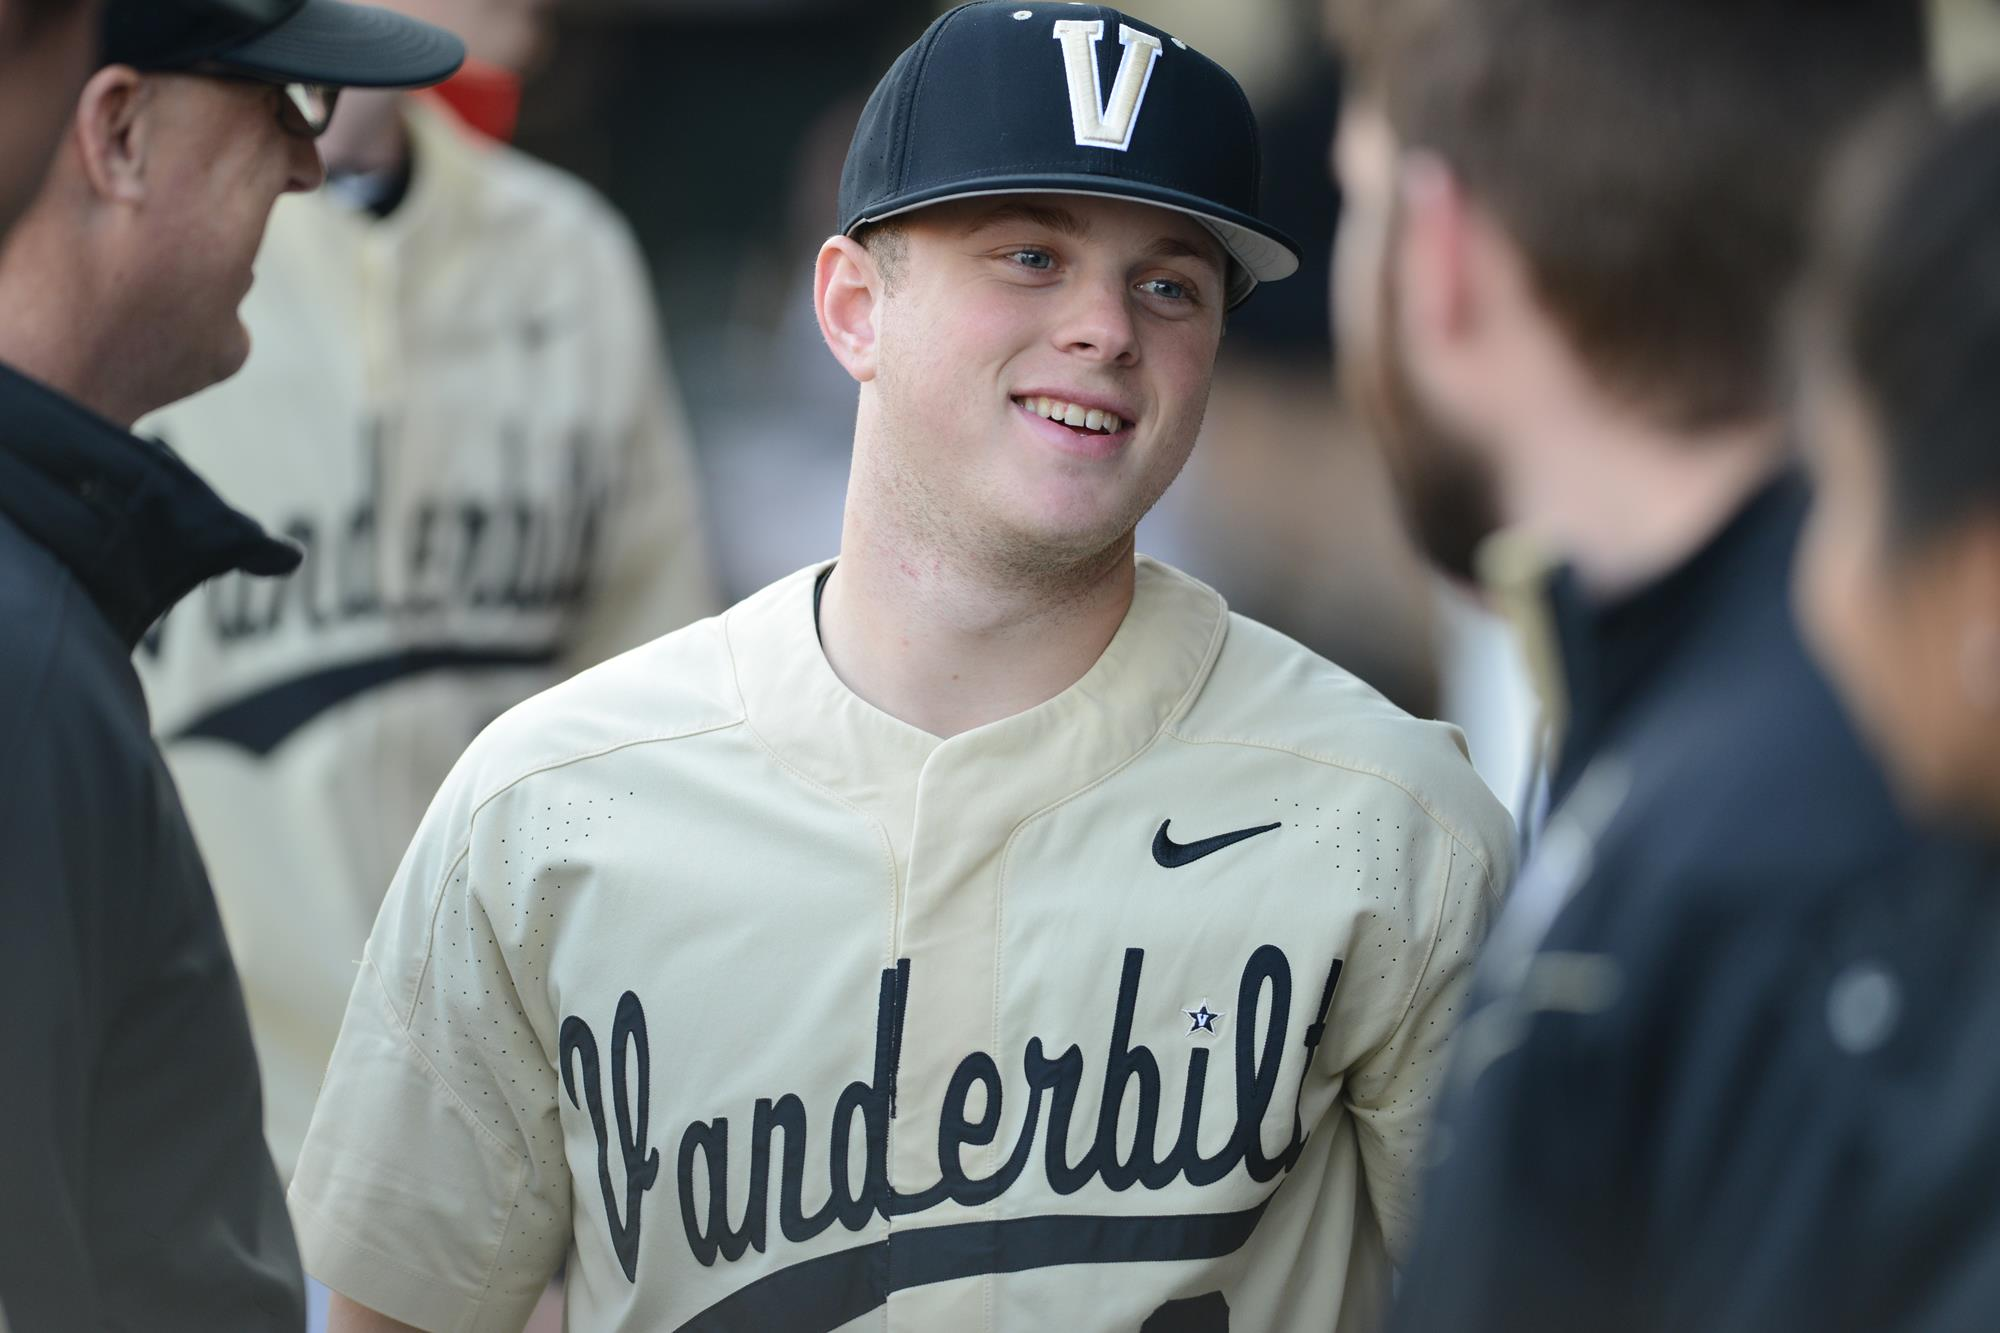 Ontario Blue Jays alum Cooper Davis (Mississauga, Ont.) had six hits in three games for the Vanderbilt Commodores.